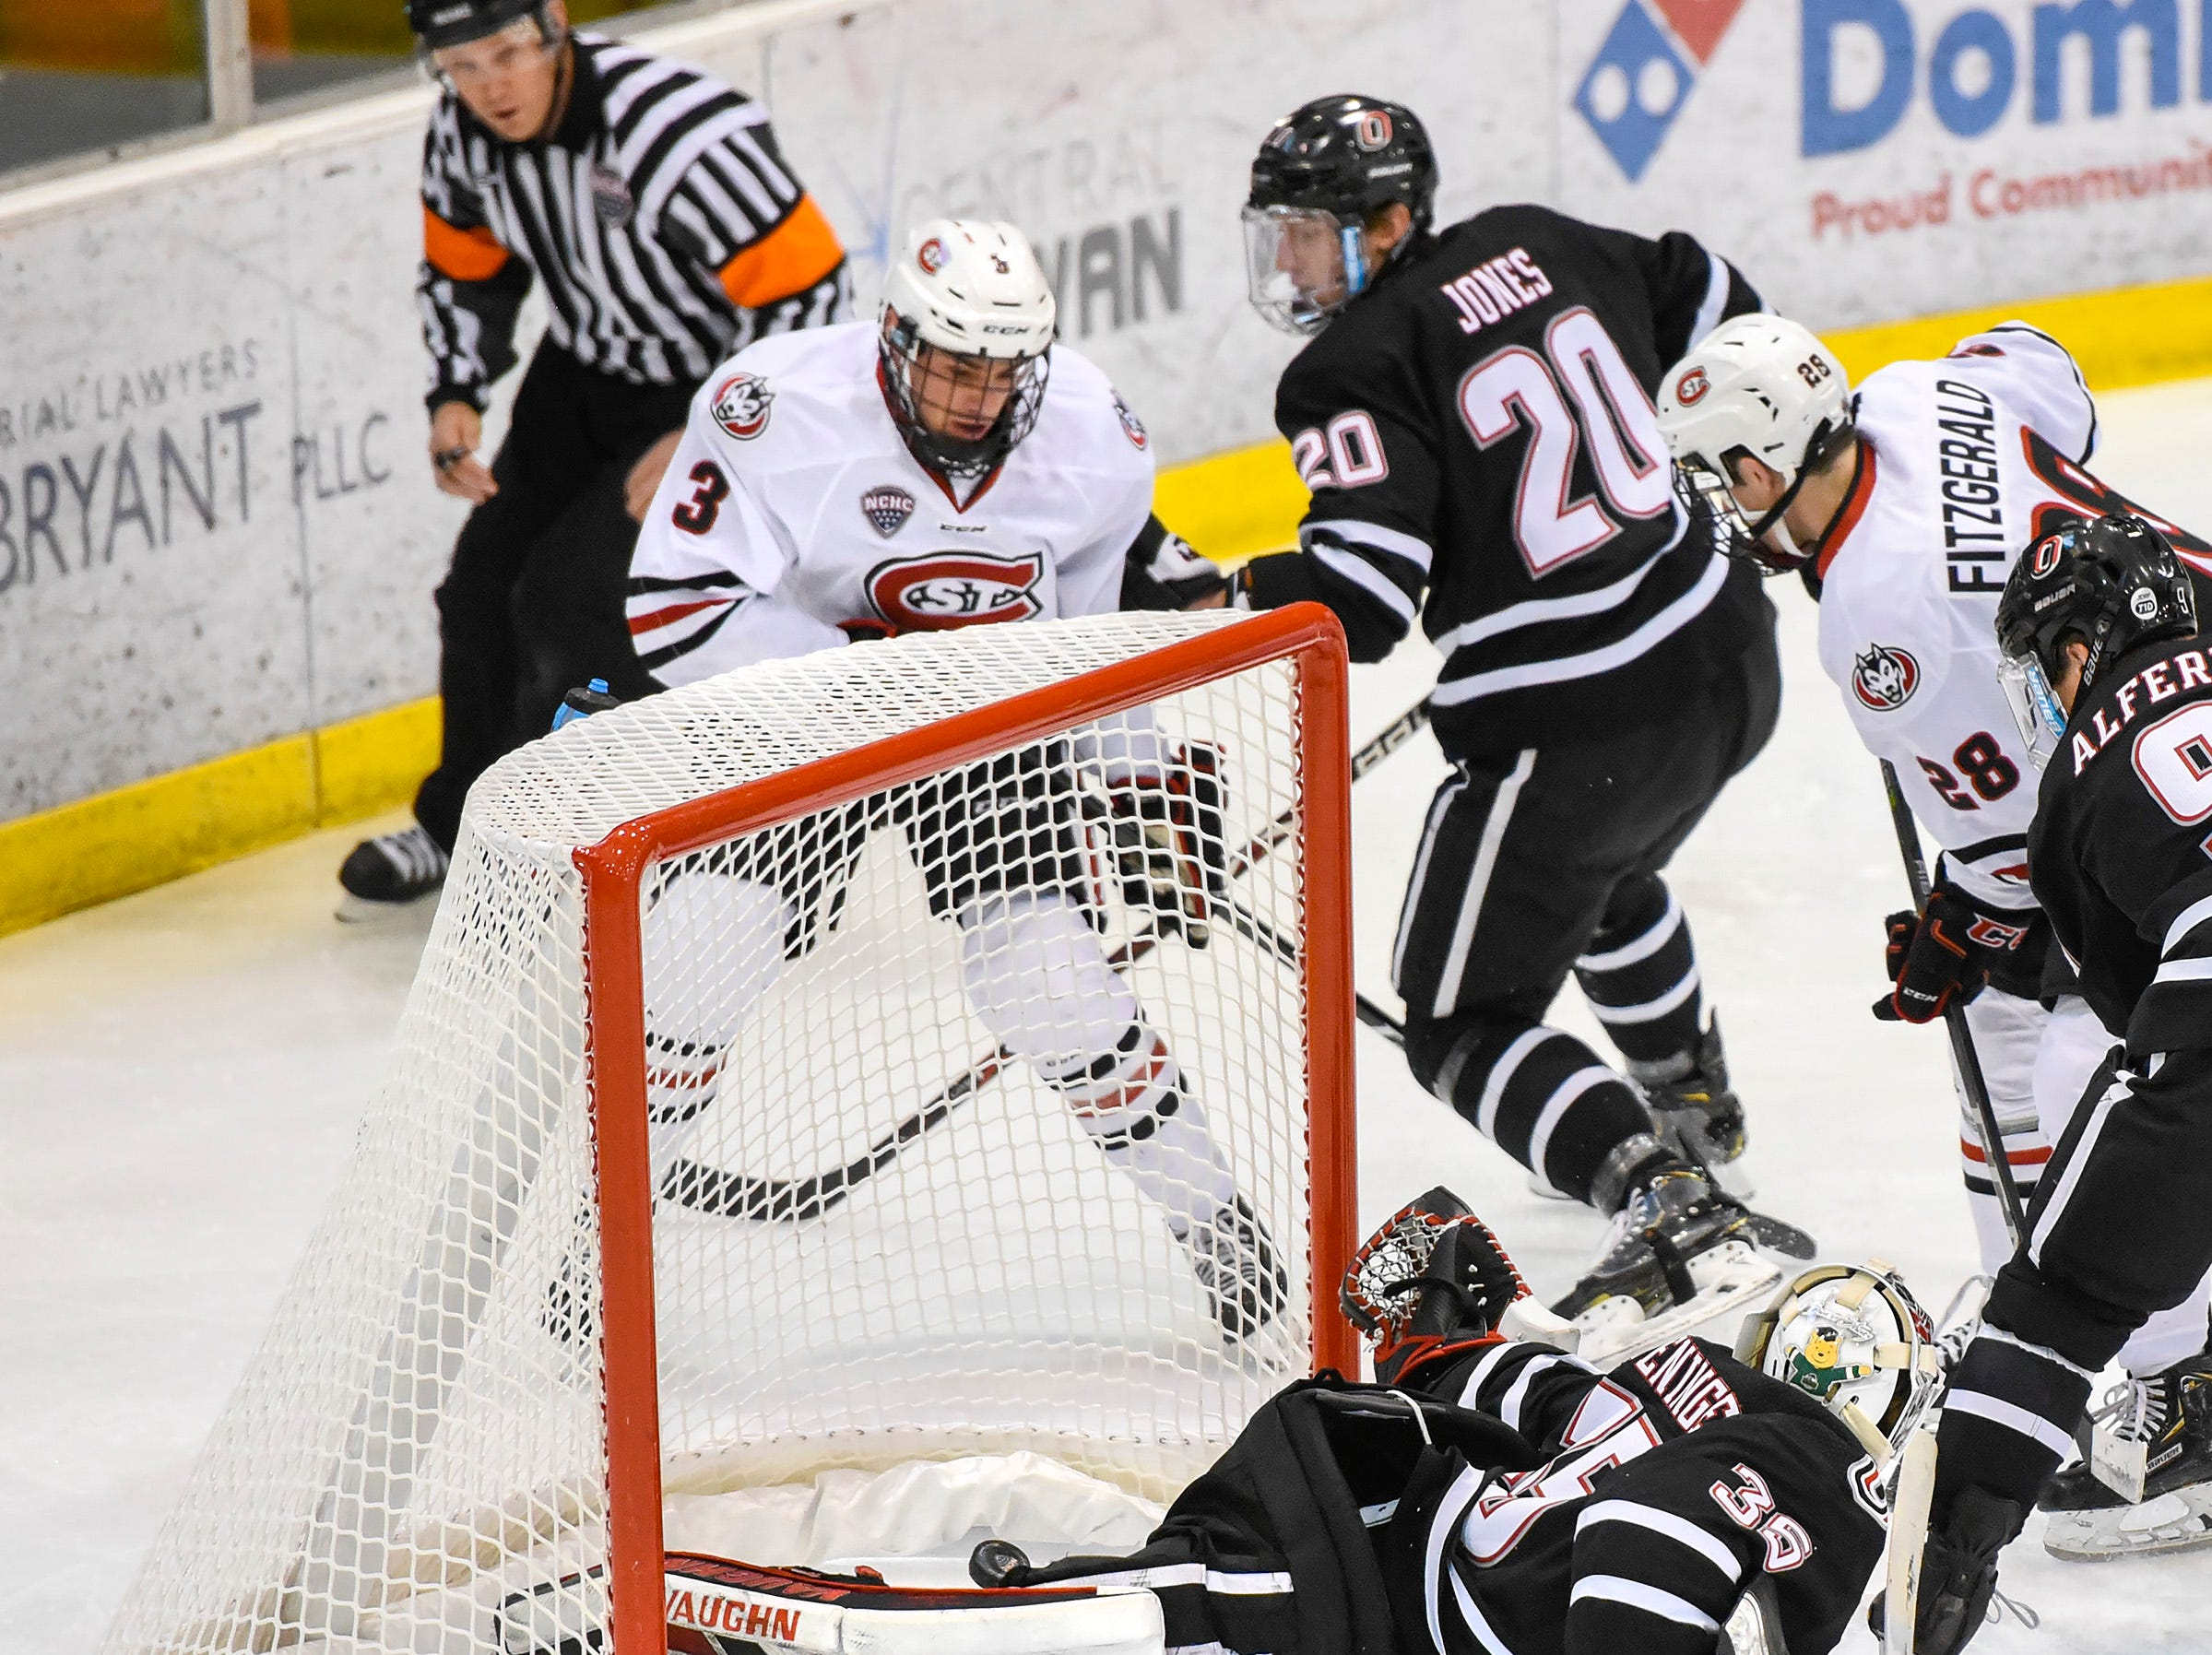 St. Cloud State's Jack Poehling, 3, slips the puck behind Nebraska-Omaha's goalie Evan Weninger to score during the first period Friday, Dec. 7, at the Herb Brooks National Hockey Center.